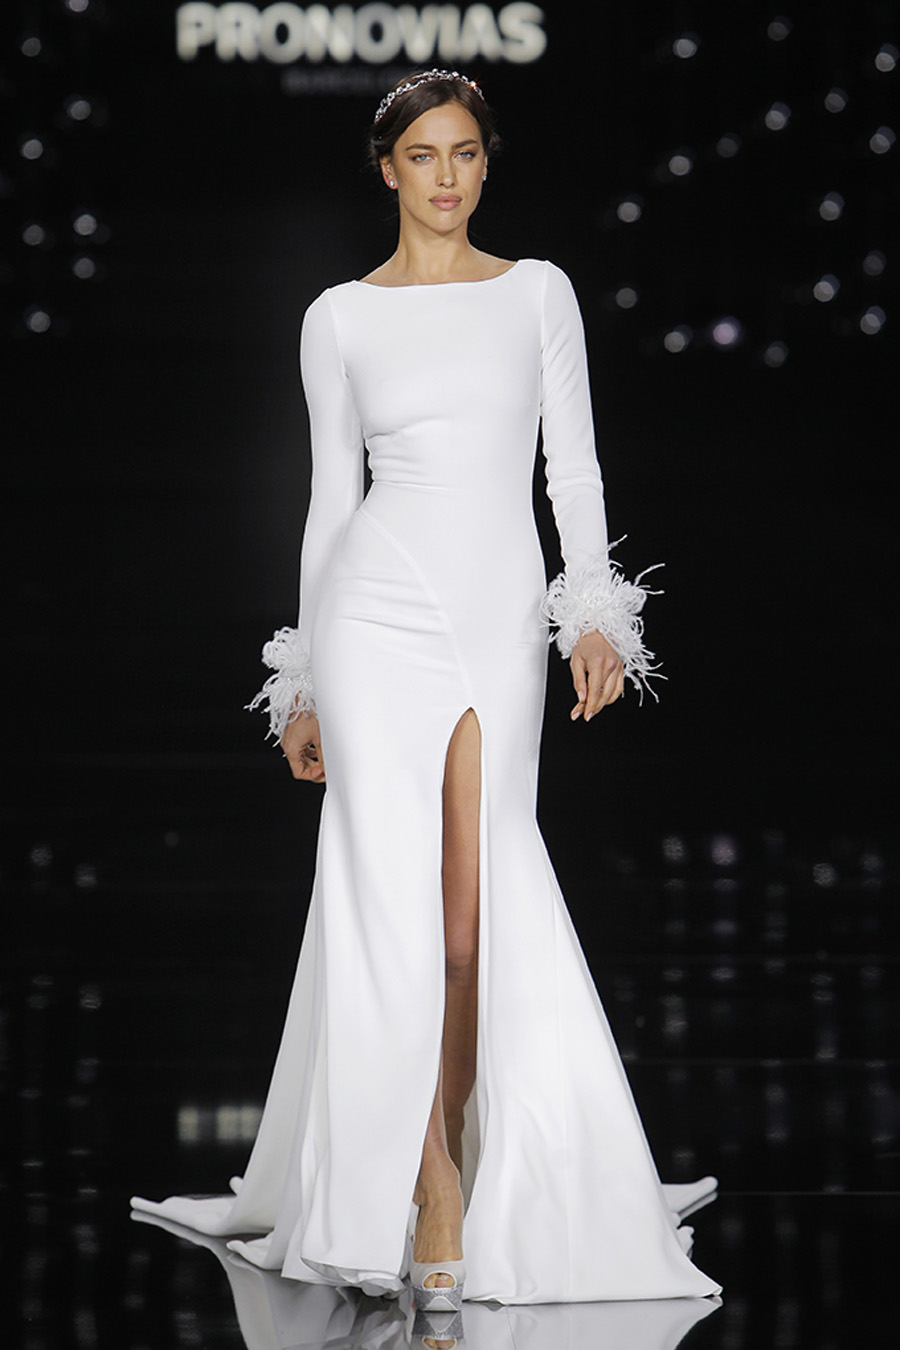 Pronovias Gown Nuria modeled by Irina Shayk